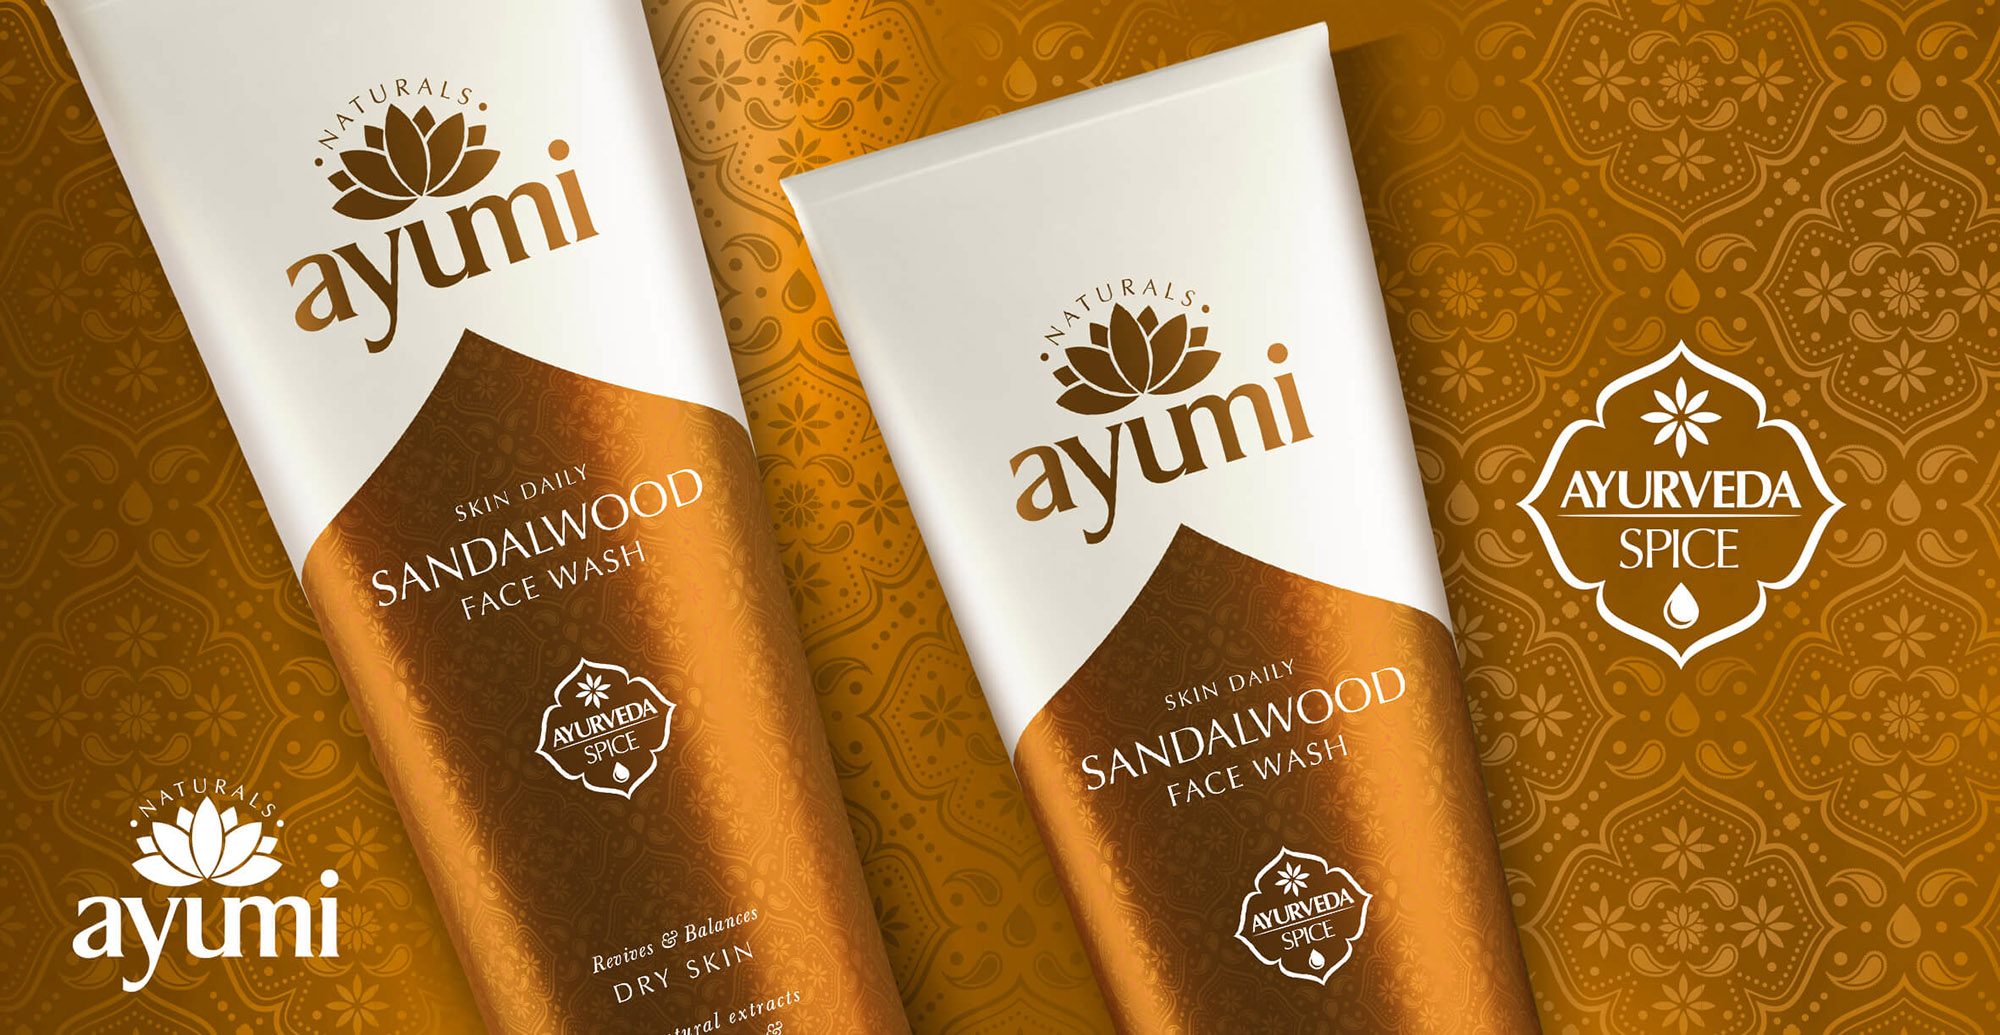 Health and Beauty Branding and Packaging Design for Beauty Brand Ayumi - Pack Shot Sandalwood Facewash